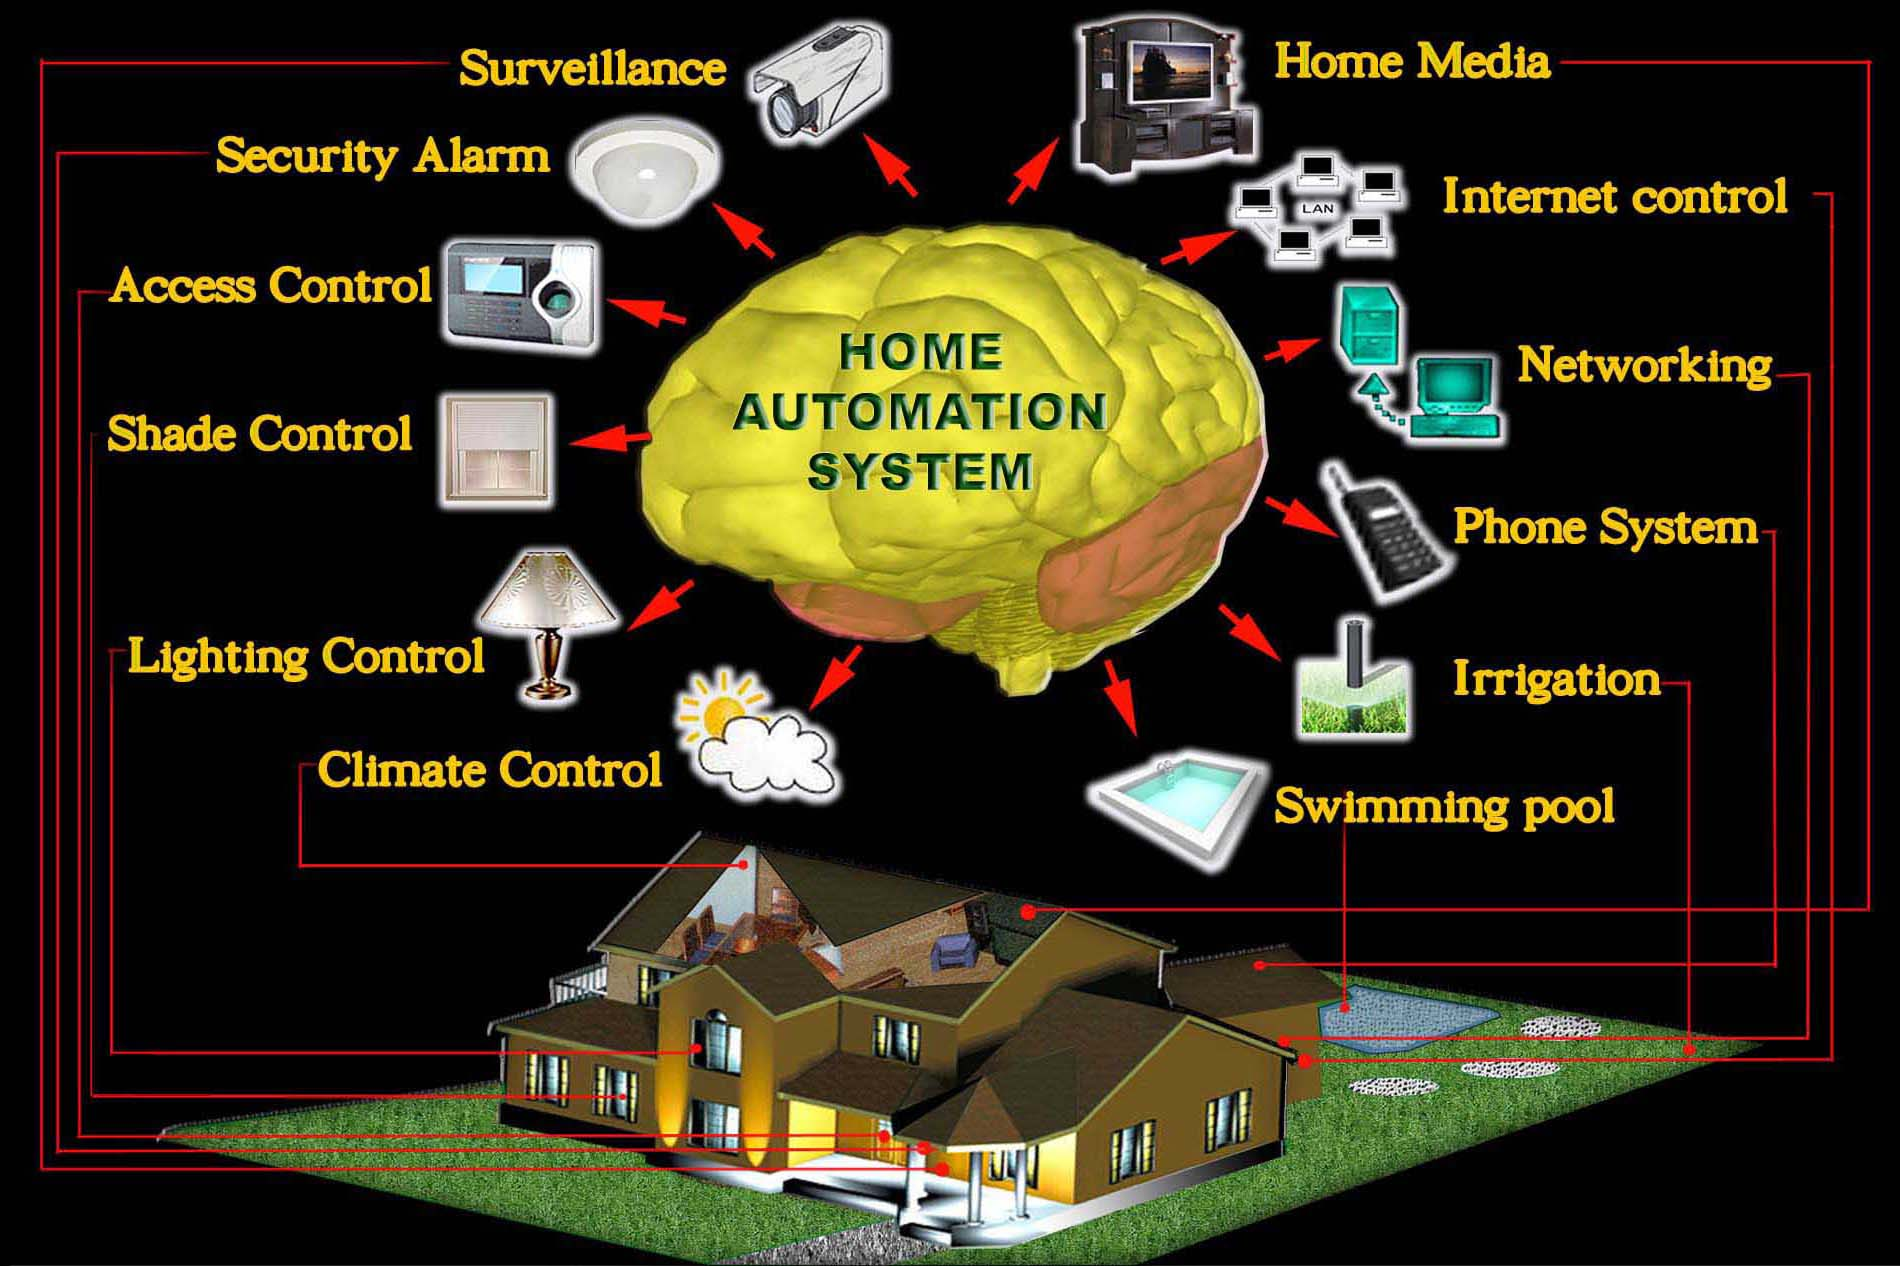 Home Automation brain